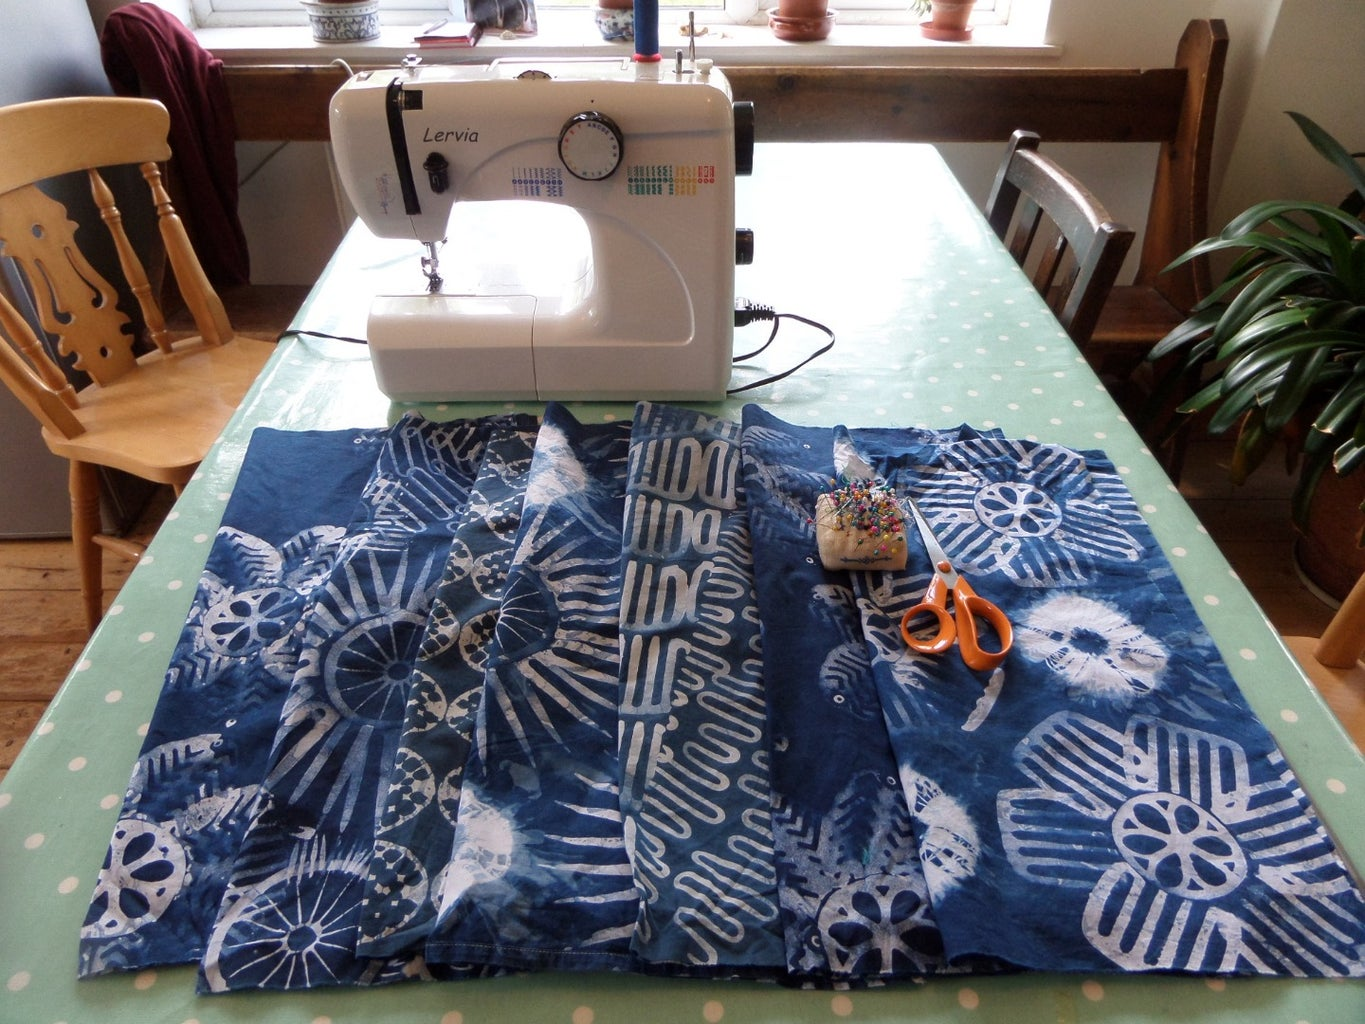 Time to Sew a Skirt!